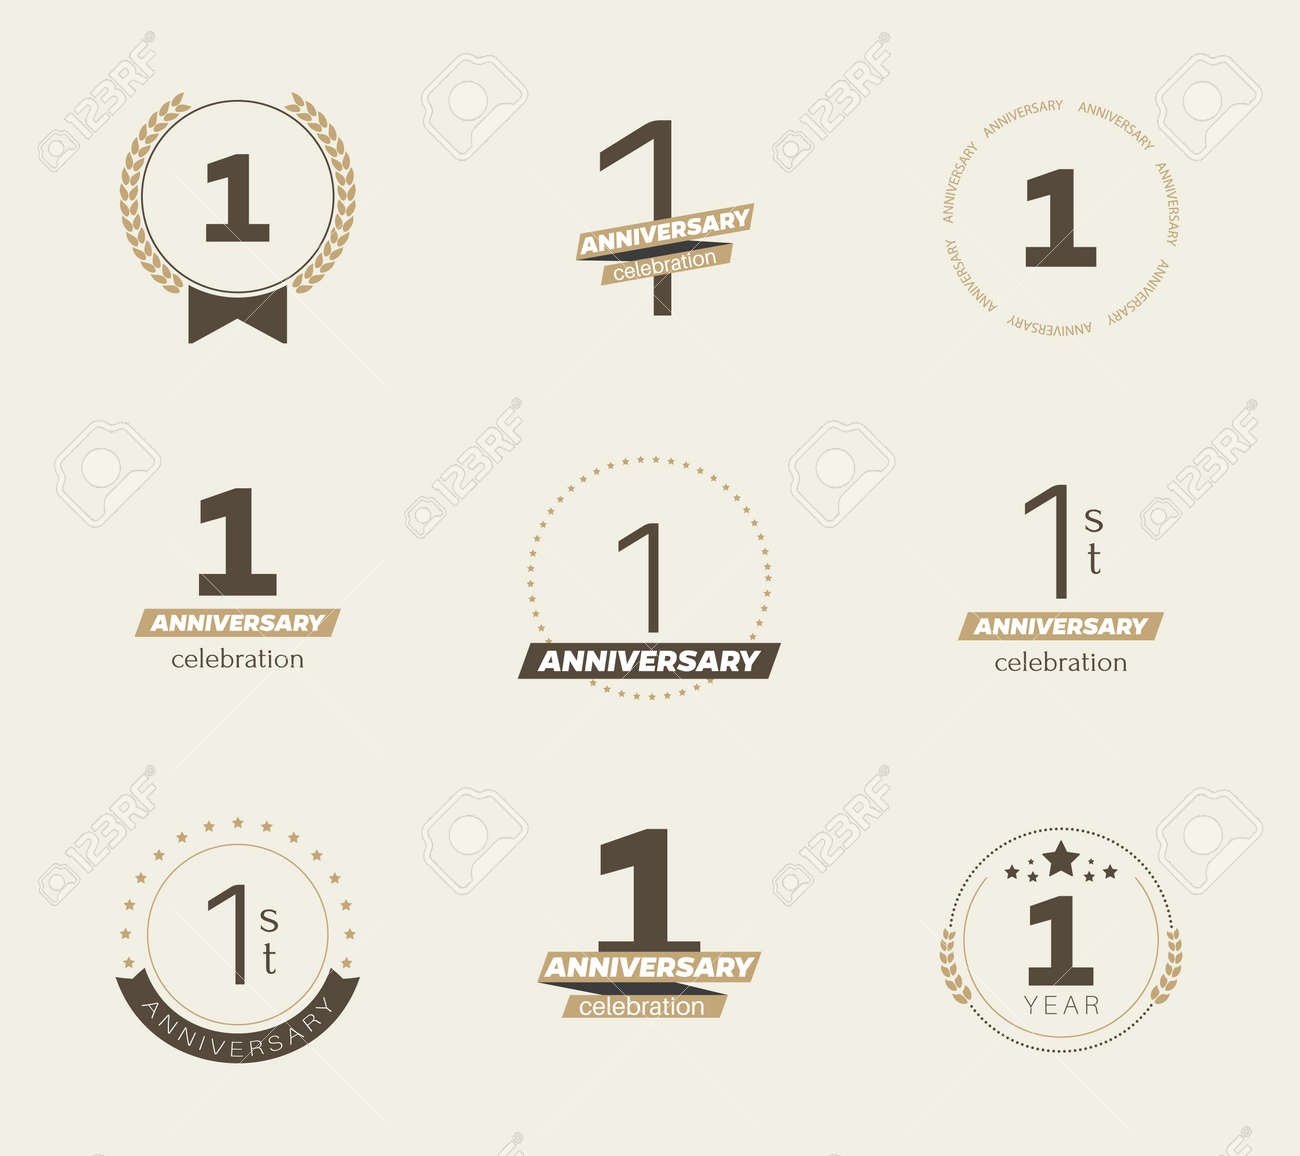 1 year anniversary logo set 1st anniversary icons vector illustration royalty free cliparts vectors and stock illustration image 101839787 1 year anniversary logo set 1st anniversary icons vector illustration